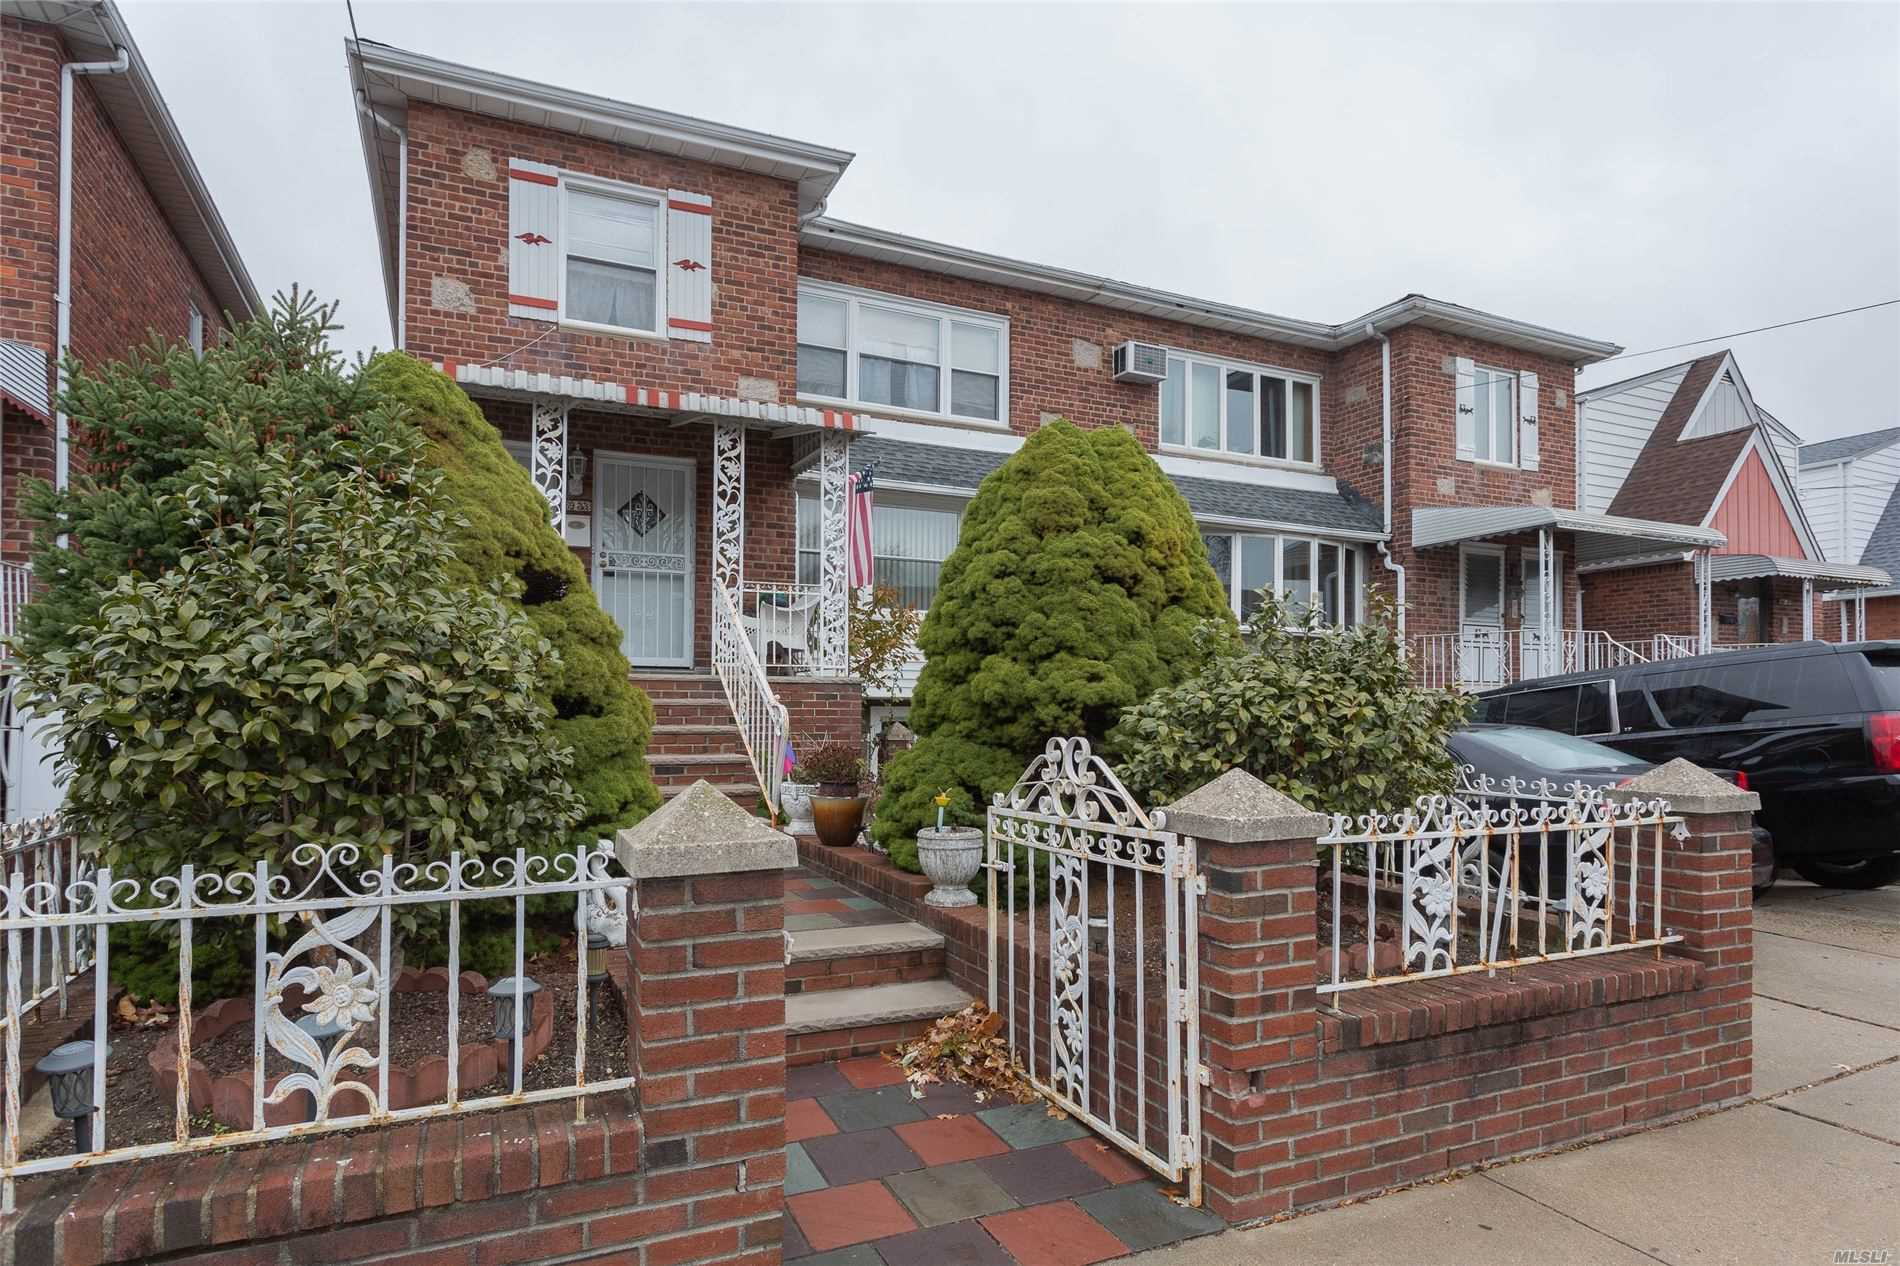 Property for sale at 169-33 26th Avenue, Flushing NY 11358, Flushing,  New York 11358